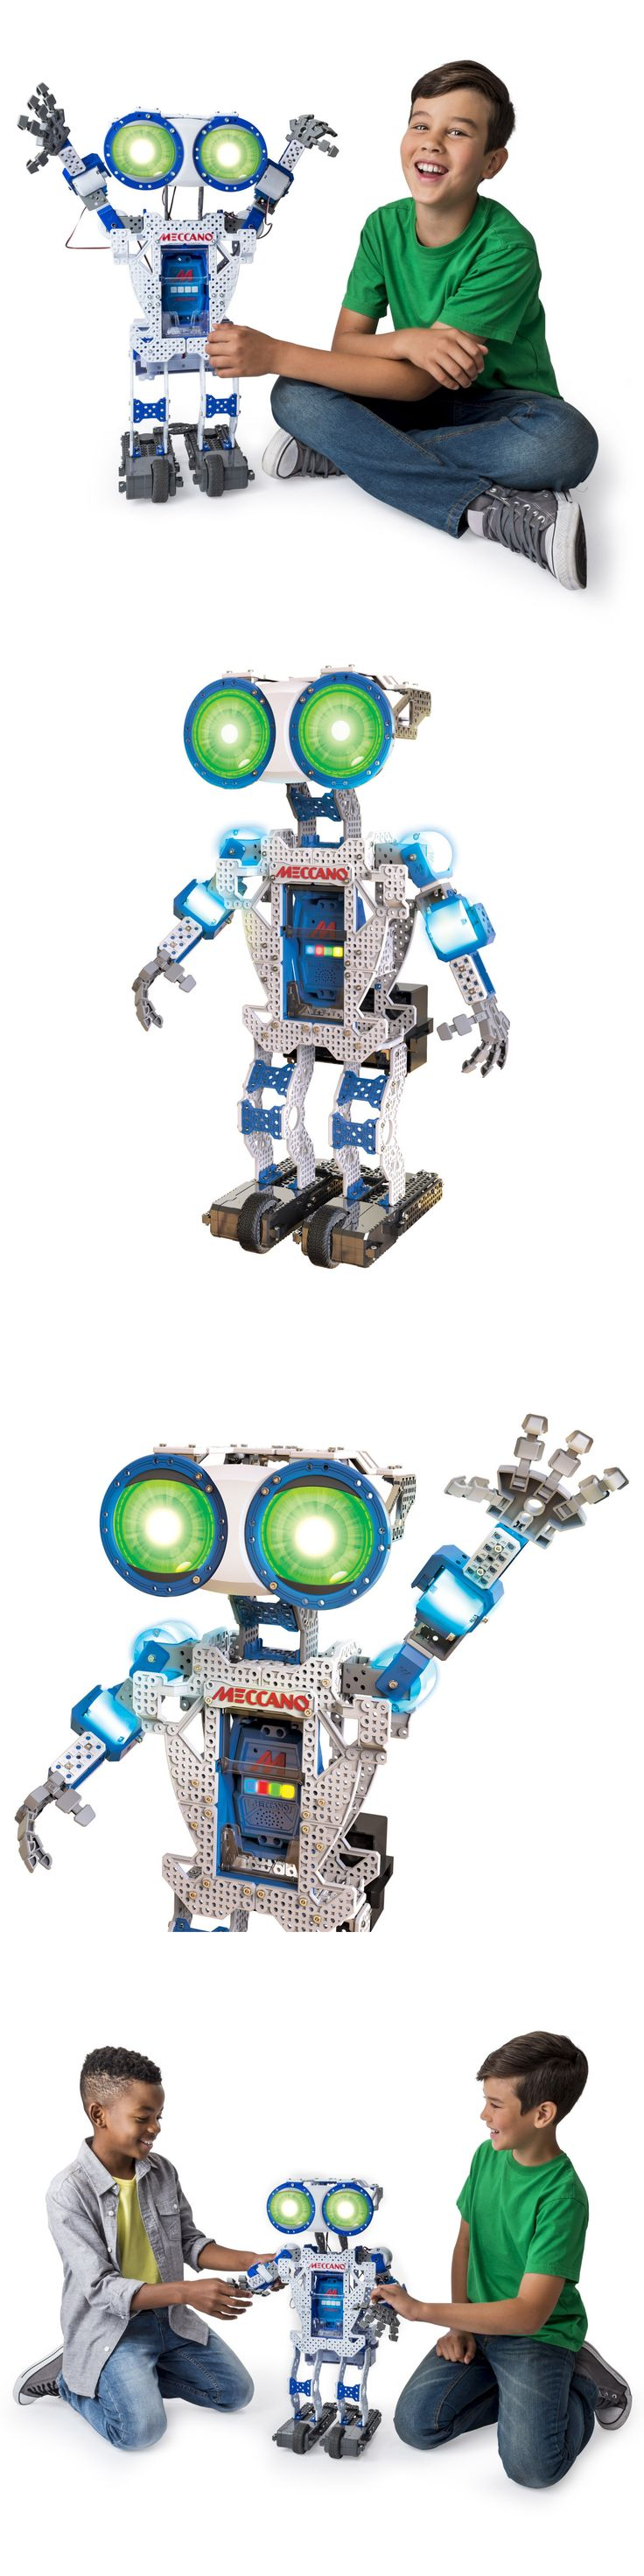 1980-Now 4318: Meccano Meccanoid Game Kids Toy Boys Fun Tech Build Your Own Robot Top Quality -> BUY IT NOW ONLY: $92.11 on eBay!